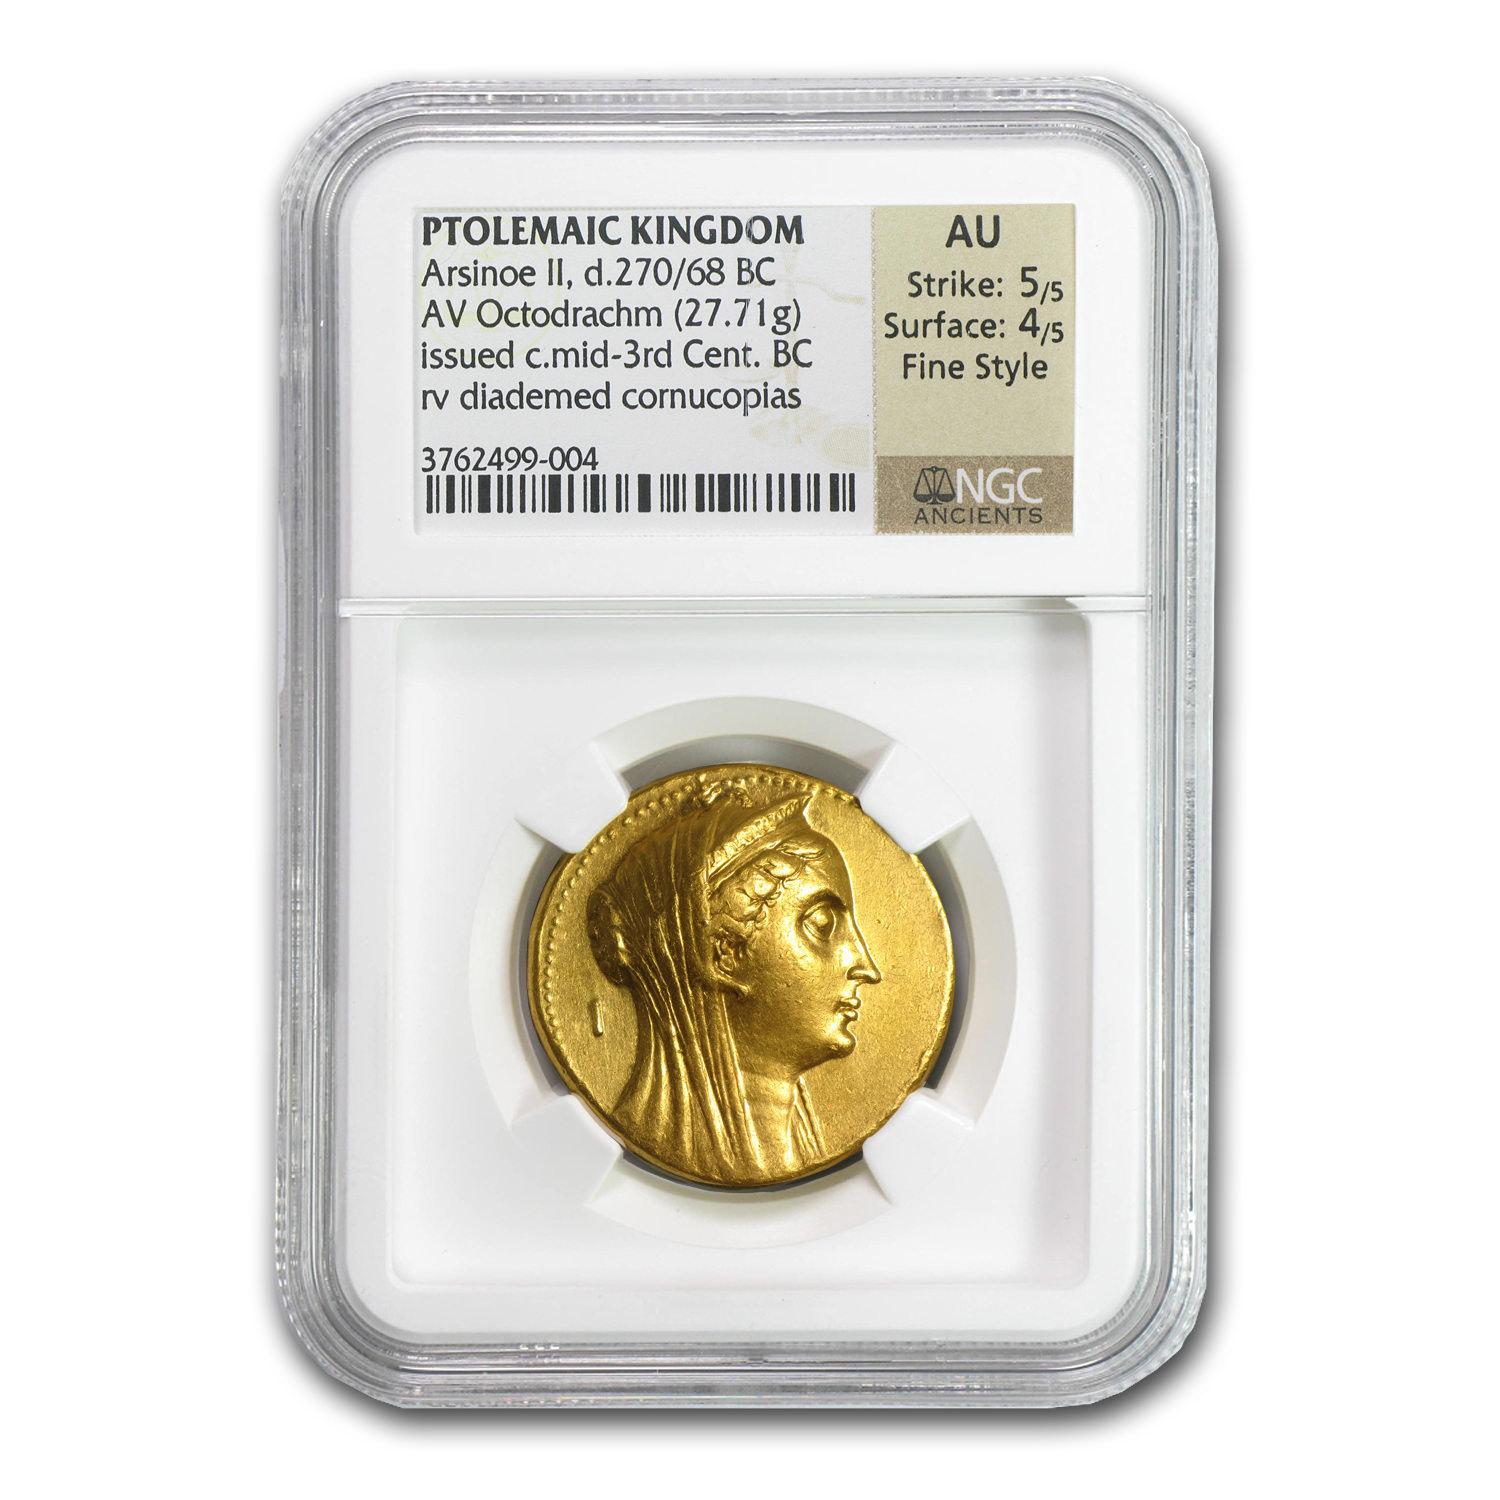 Ptolemaic Kingdom Gold Octodrachm Mid 3rd Cent. BC - AU NGC